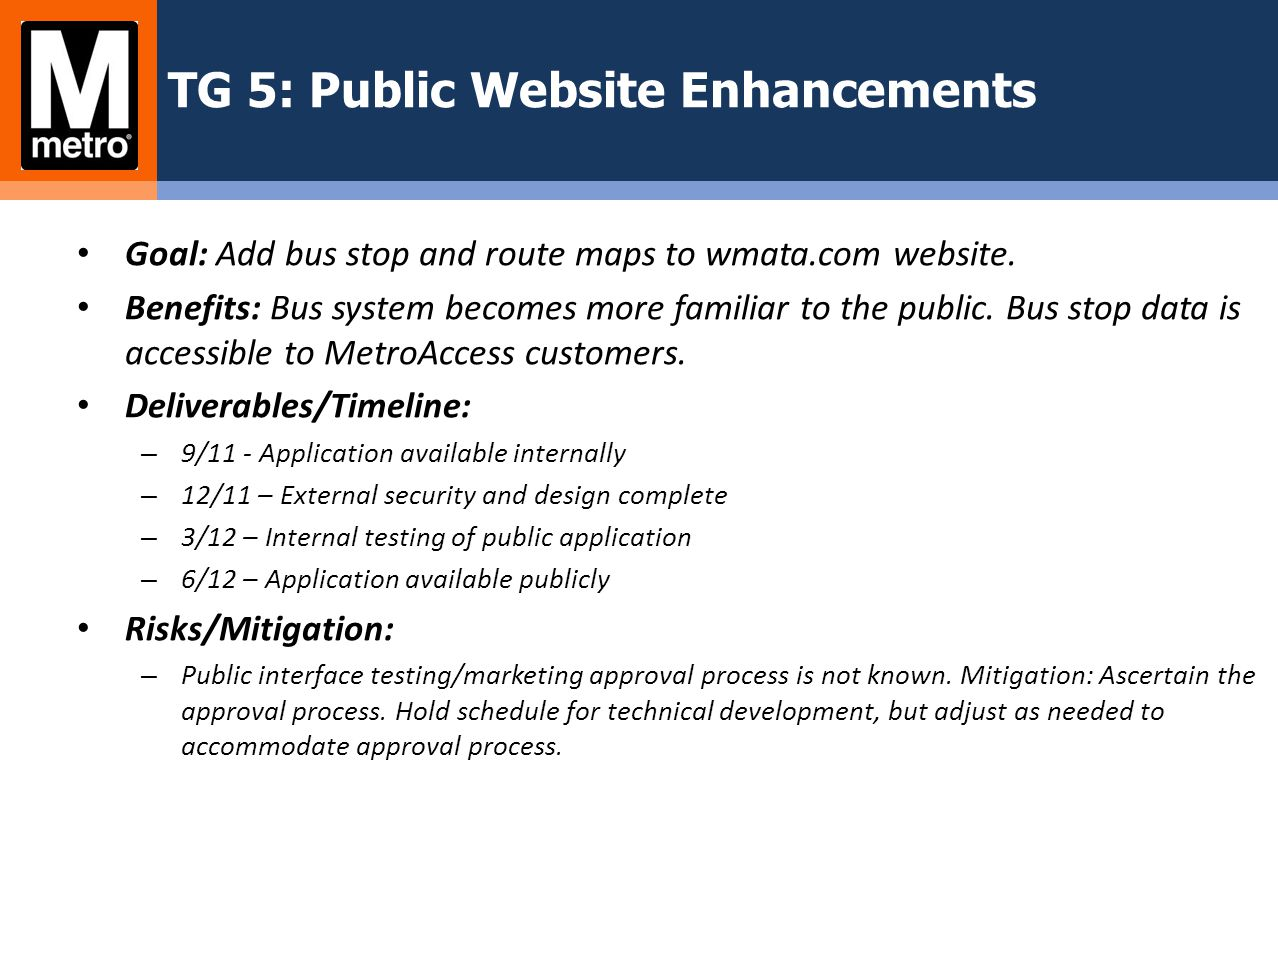 TG 5: Public Website Enhancements Goal: Add bus stop and route maps to wmata.com website. Benefits: Bus system becomes more familiar to the public. Bu